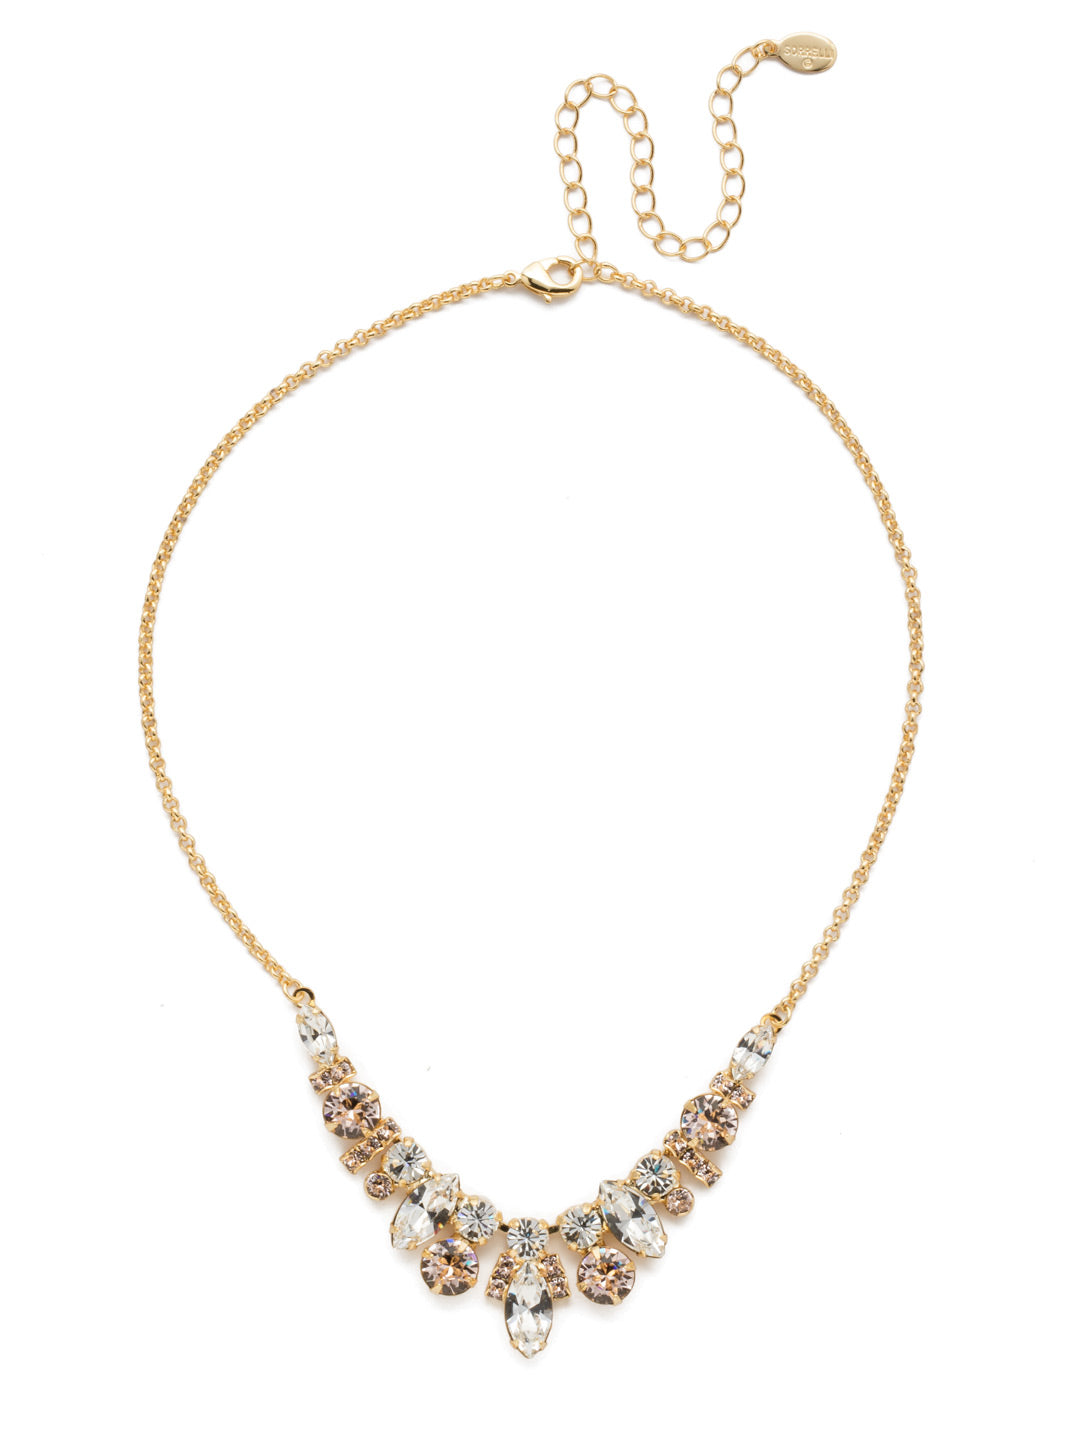 Noveau Navette Statement Necklace - NDG90BGPLS